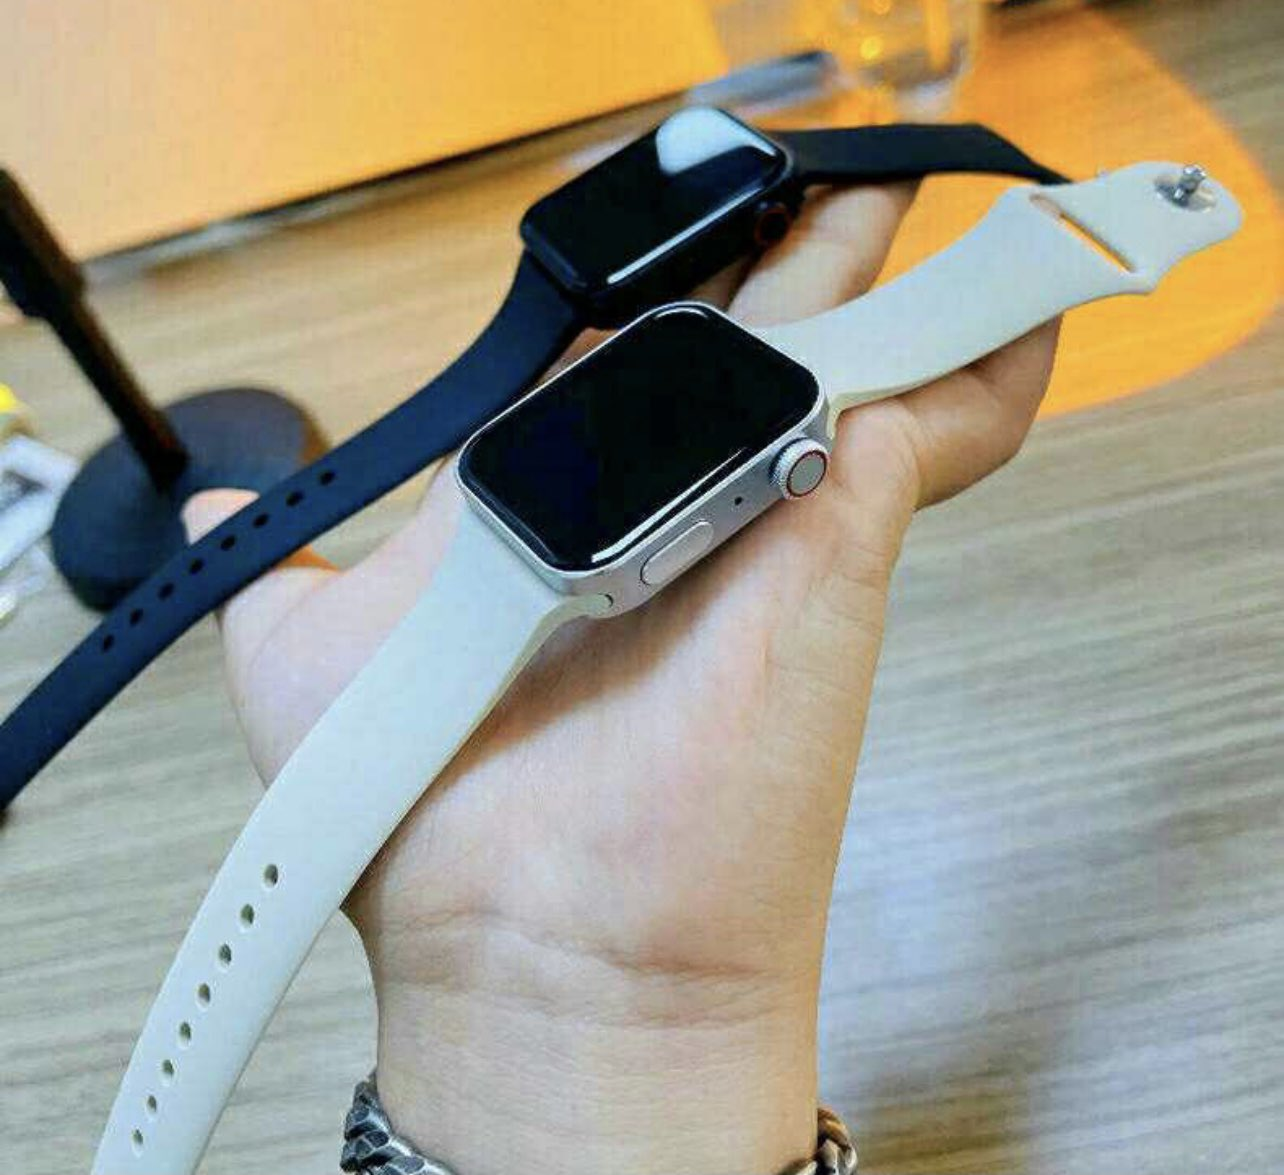 First impressions of the apple watch series 6 have now been shared by select media outlets and youtubers, providing a closer look at the device's. Apple Watch Series 7 Clones Give Us A Glimpse Of A Stunning New Look Imore